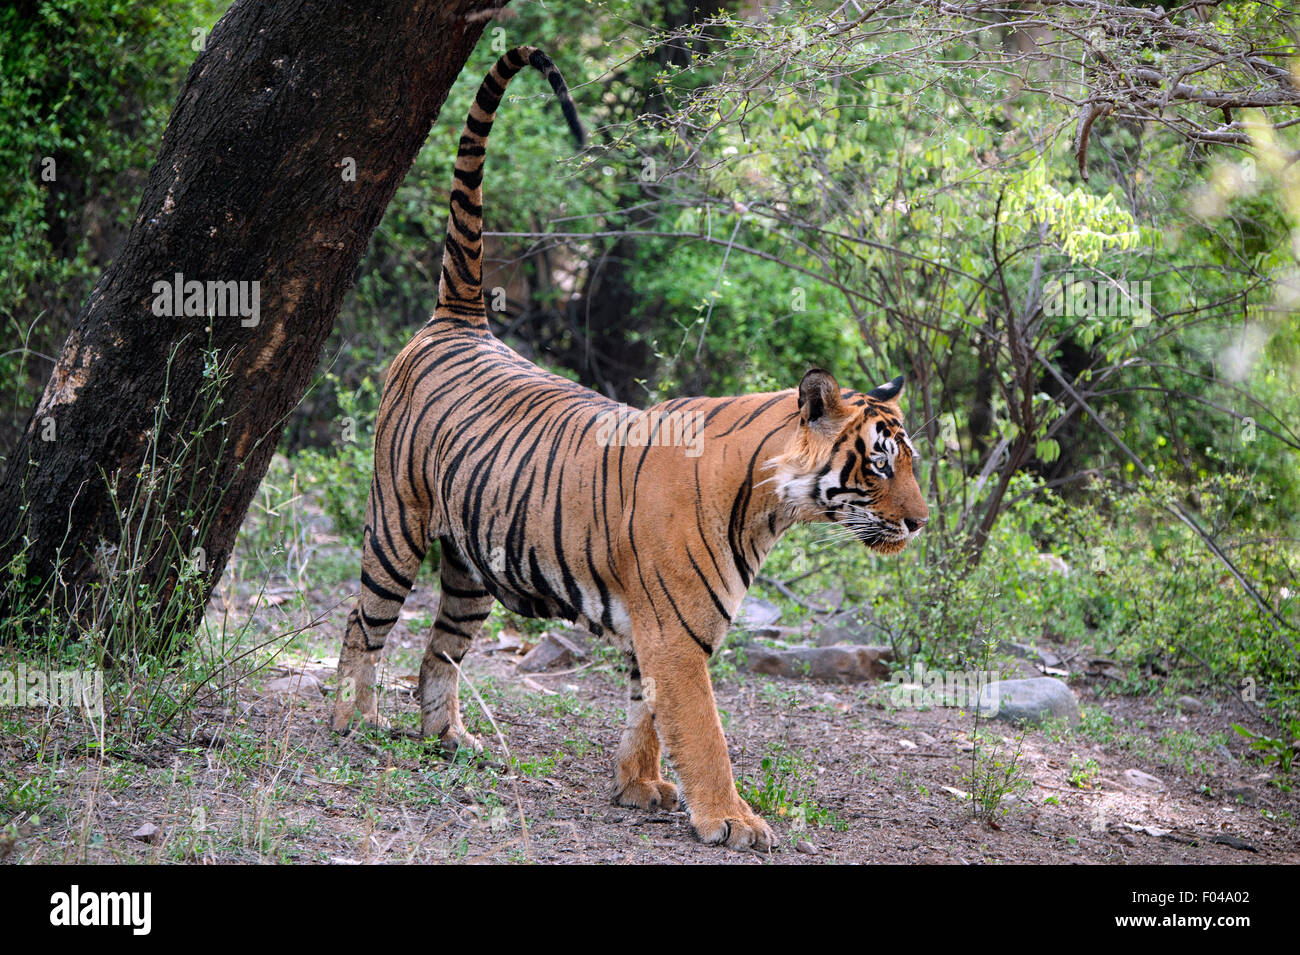 The image was taken in Ranthambore national park-India - Stock Image